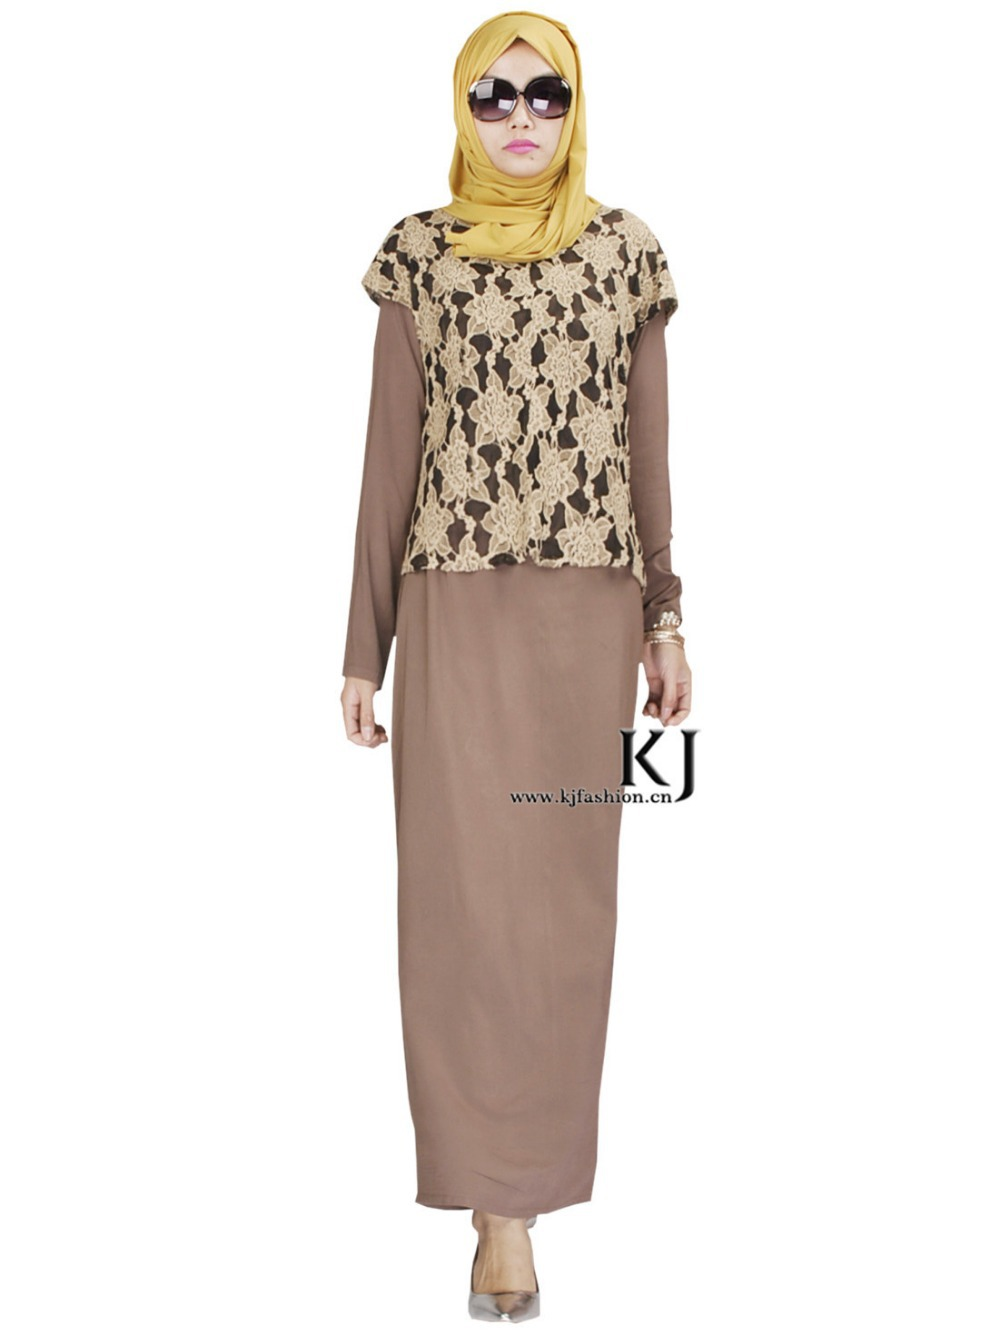 Turkish women's clothing online